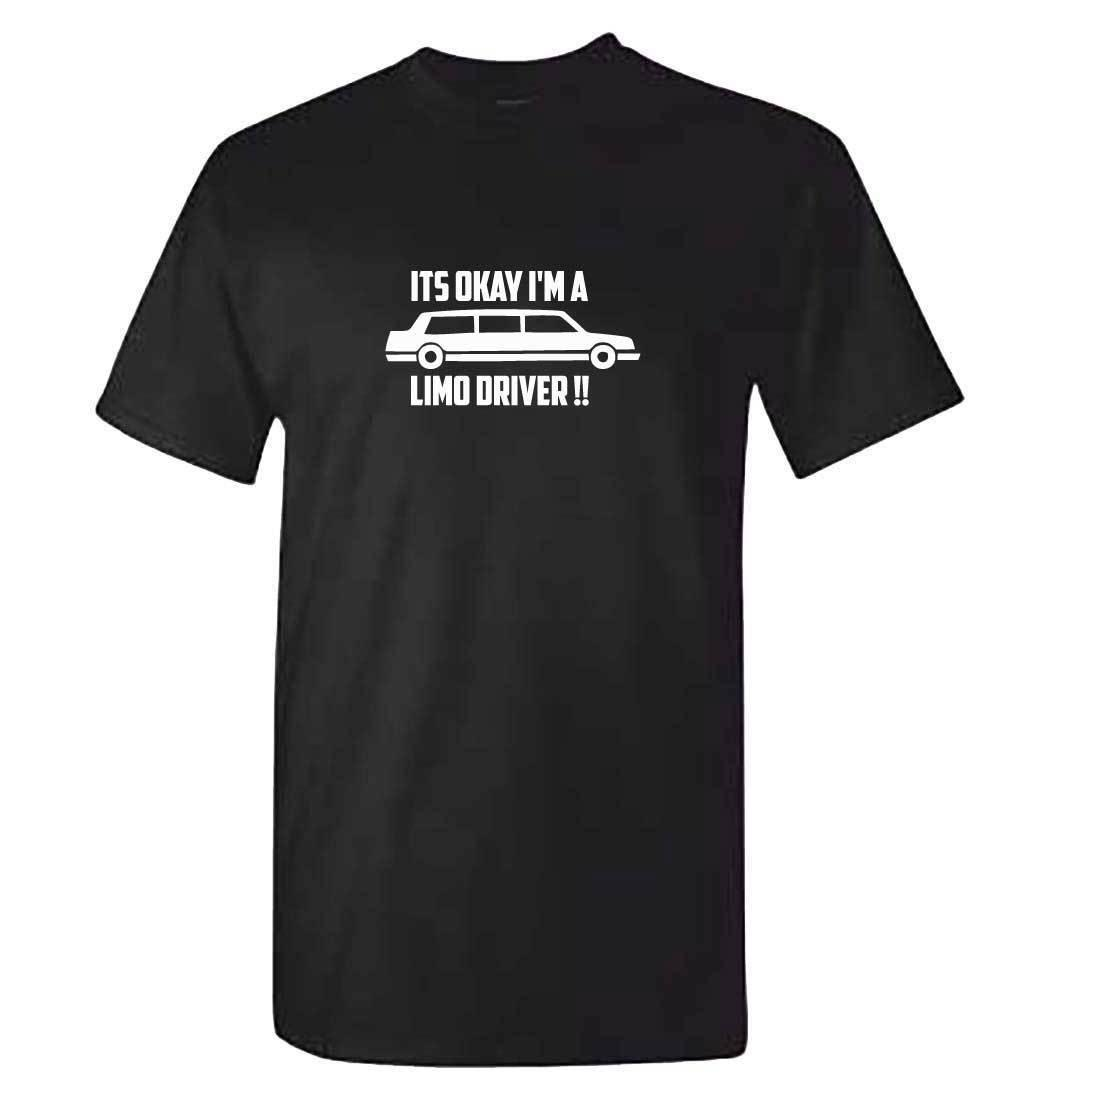 36e187ca It's Okay I'm A Limo Driver TShirt - Mens Dumb And Dumber Limousine Funny  Gift Brand shirts jeans Print jurney Print t-shirt